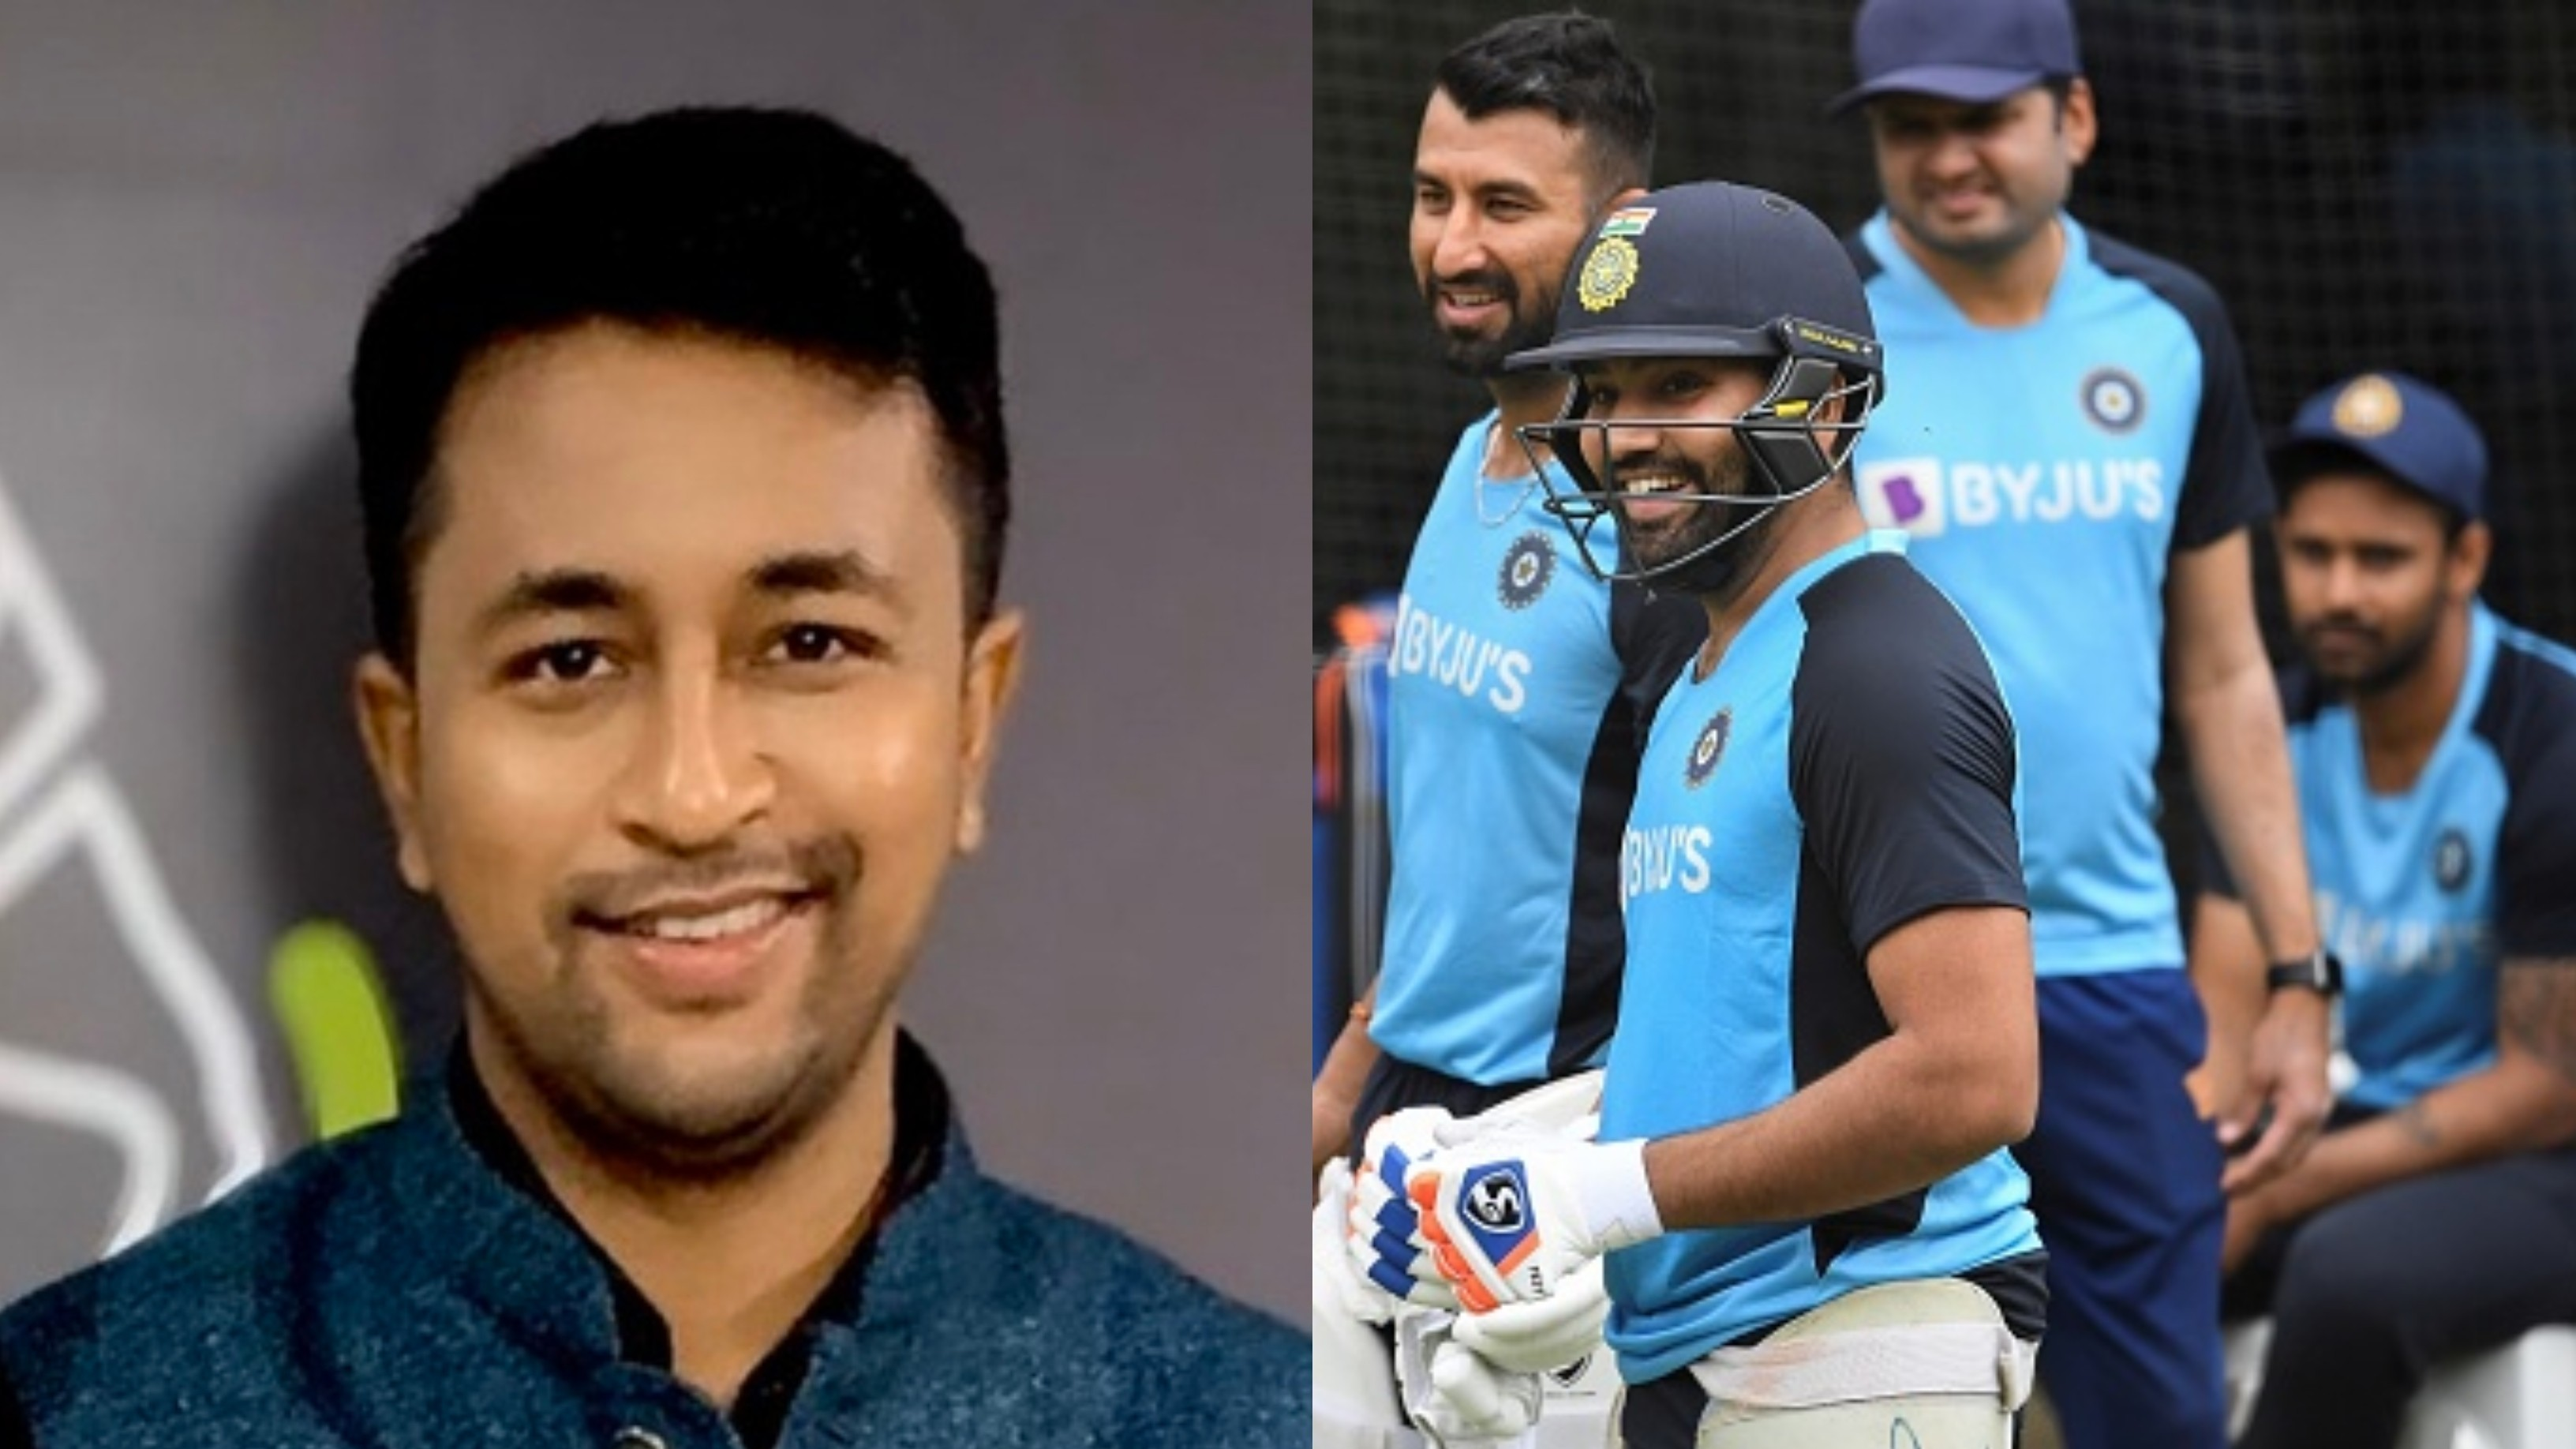 AUS v IND 2020-21: Australians are bad losers; trying to get under the skin of Indians, says Pragyan Ojha